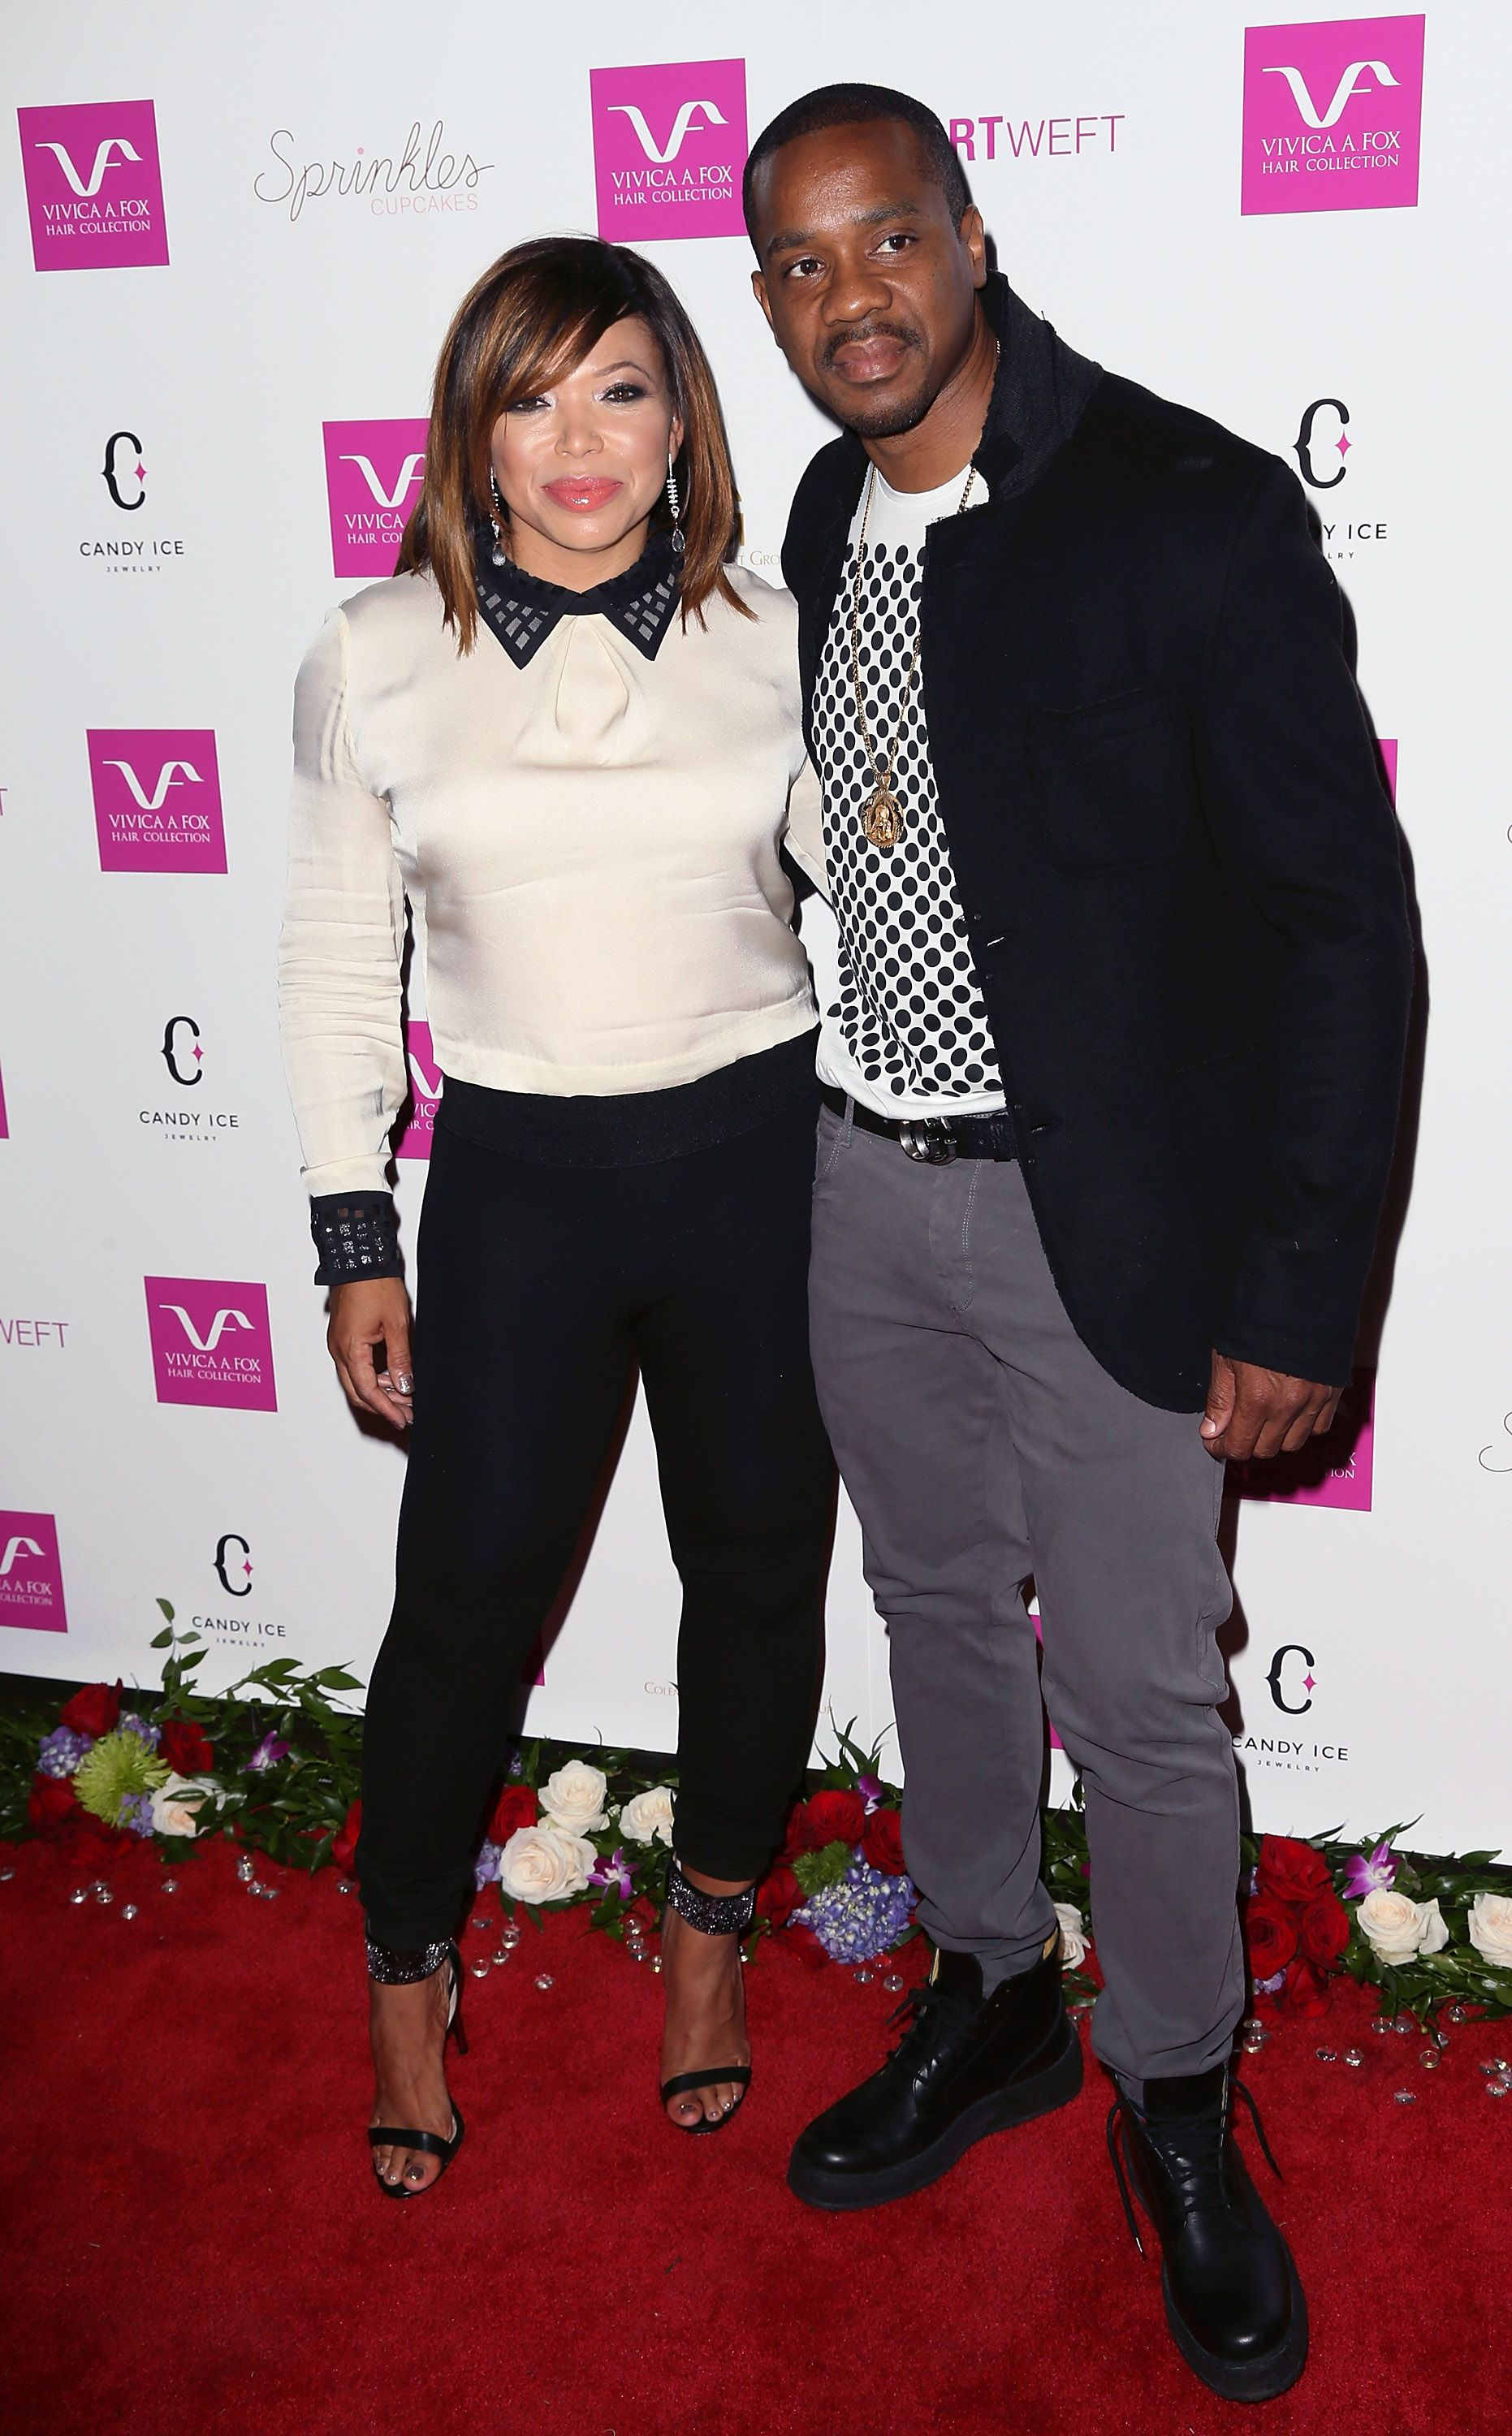 Tisha Campbell and Duane Martin during Vivica A. Fox's 50th birthday celebration on August 2, 2014 in California. | Source: Getty Images